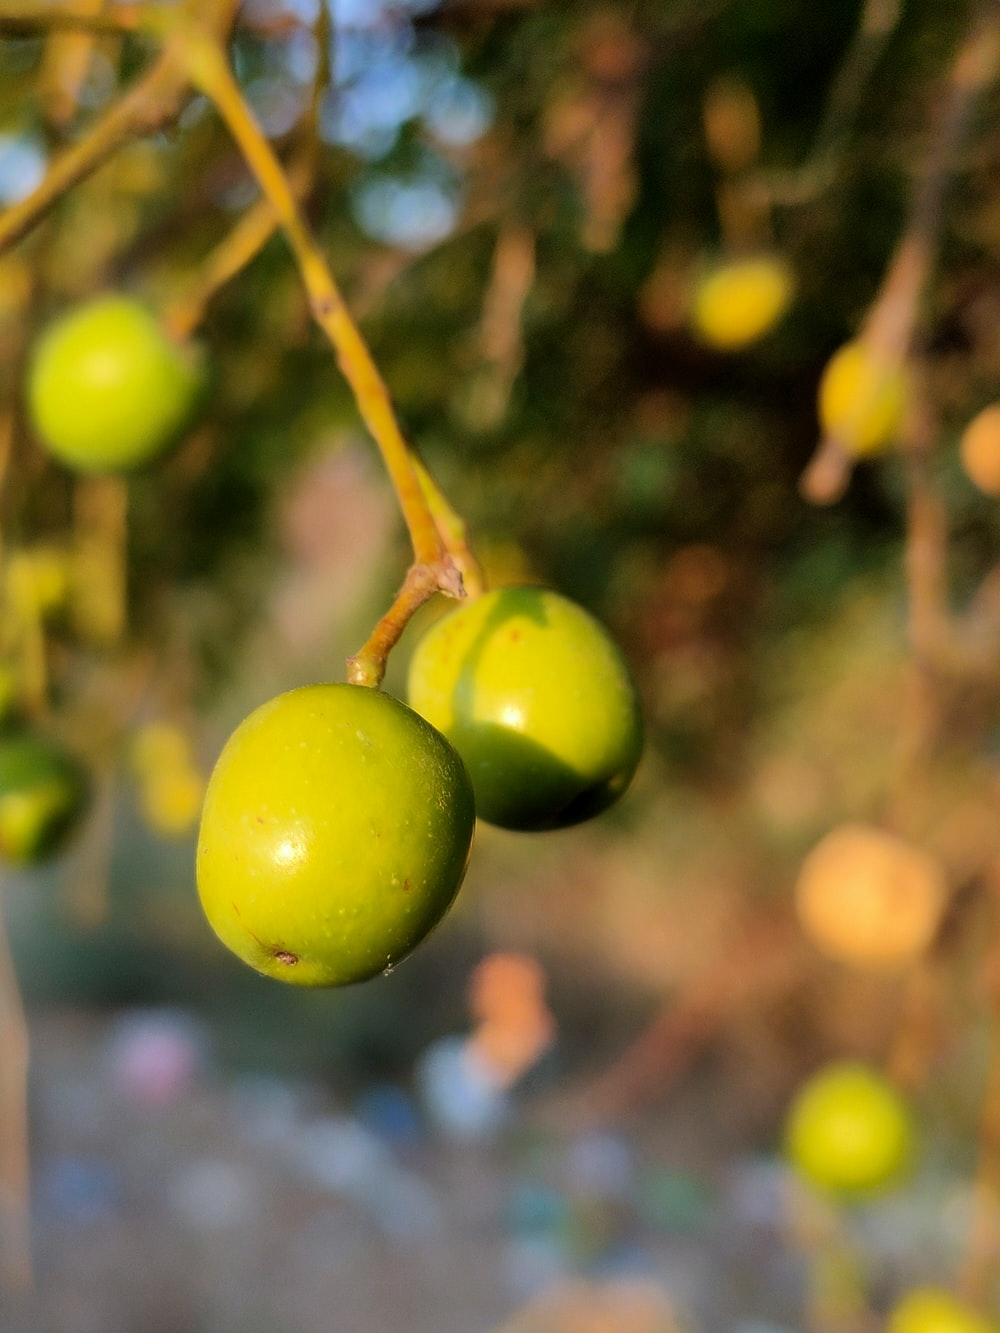 green round fruit in close up photography